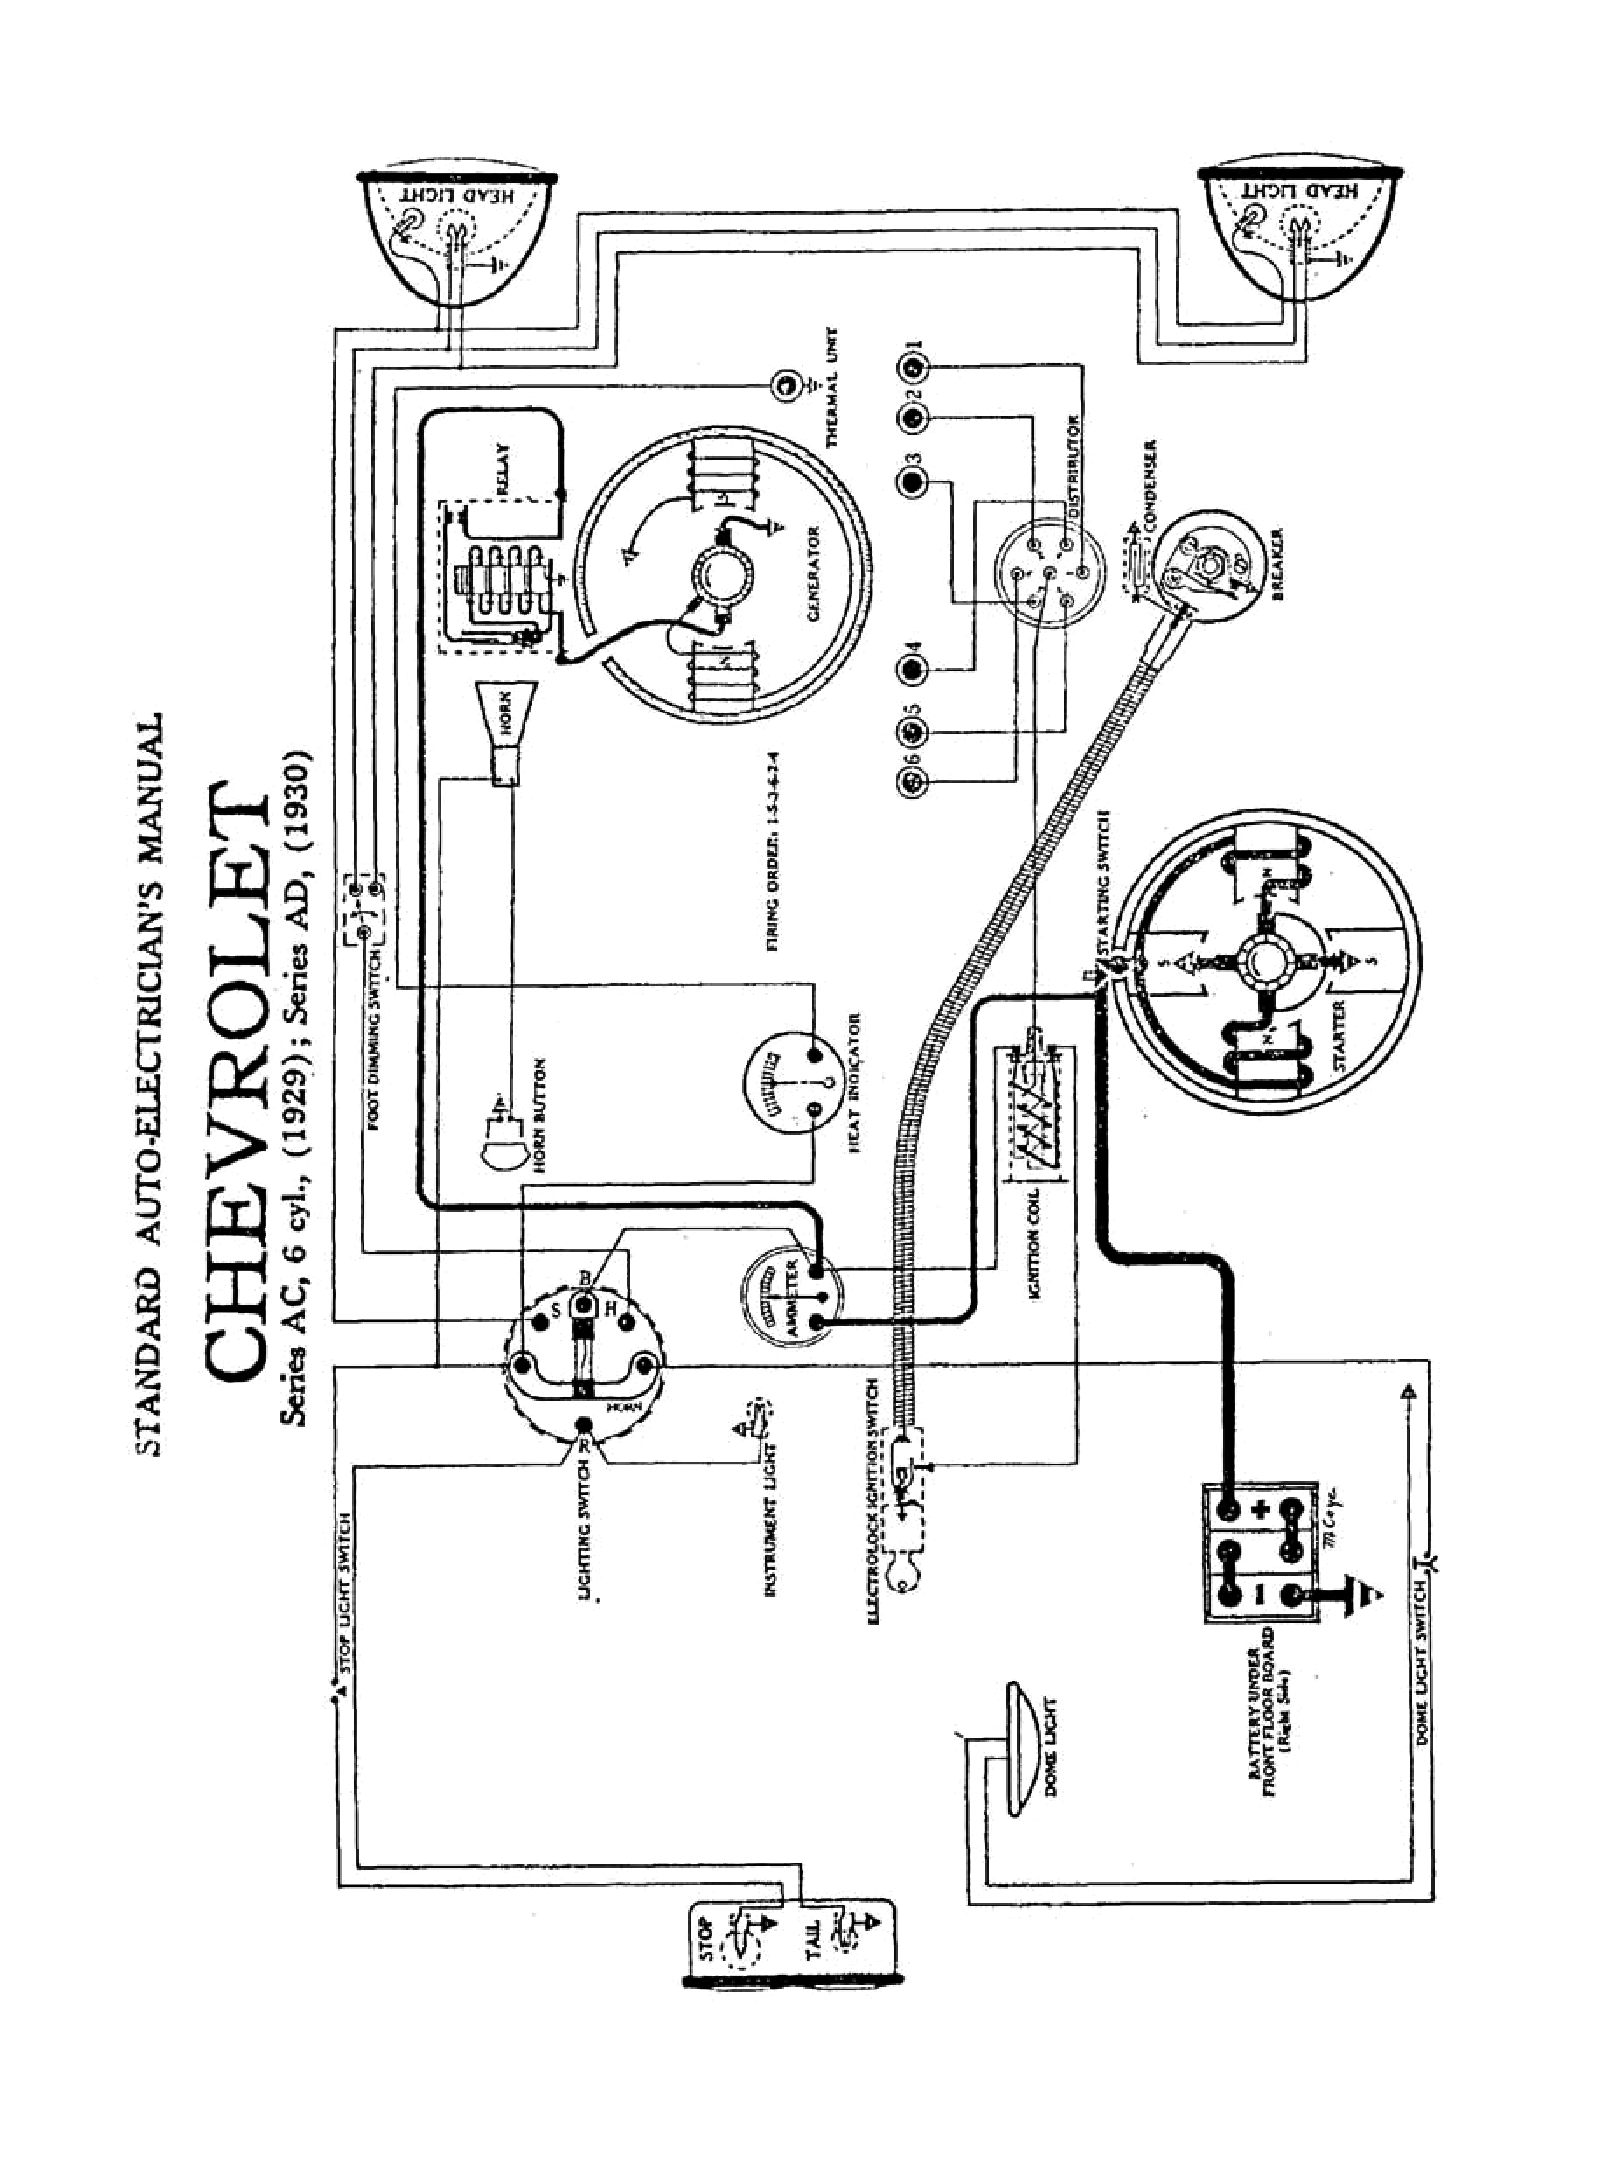 2930wiring chevy wiring diagrams 1927 ford model t wiring diagram at mifinder.co